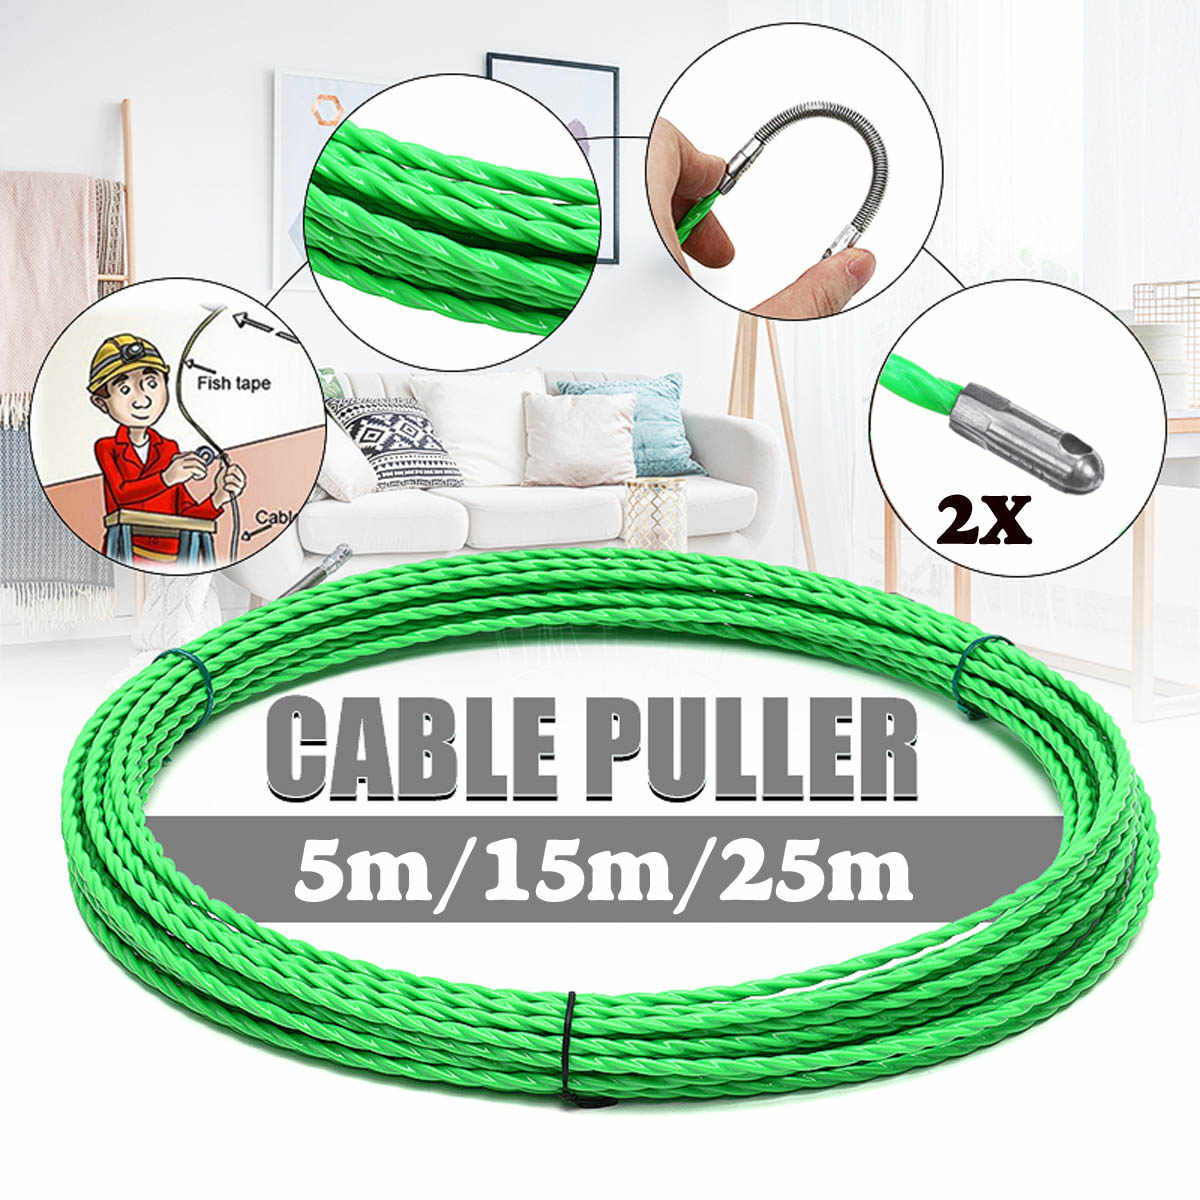 Fiber Glass Fish Tape Reel Puller 4mm*30m Fiberglass Electrical Wire Cable US